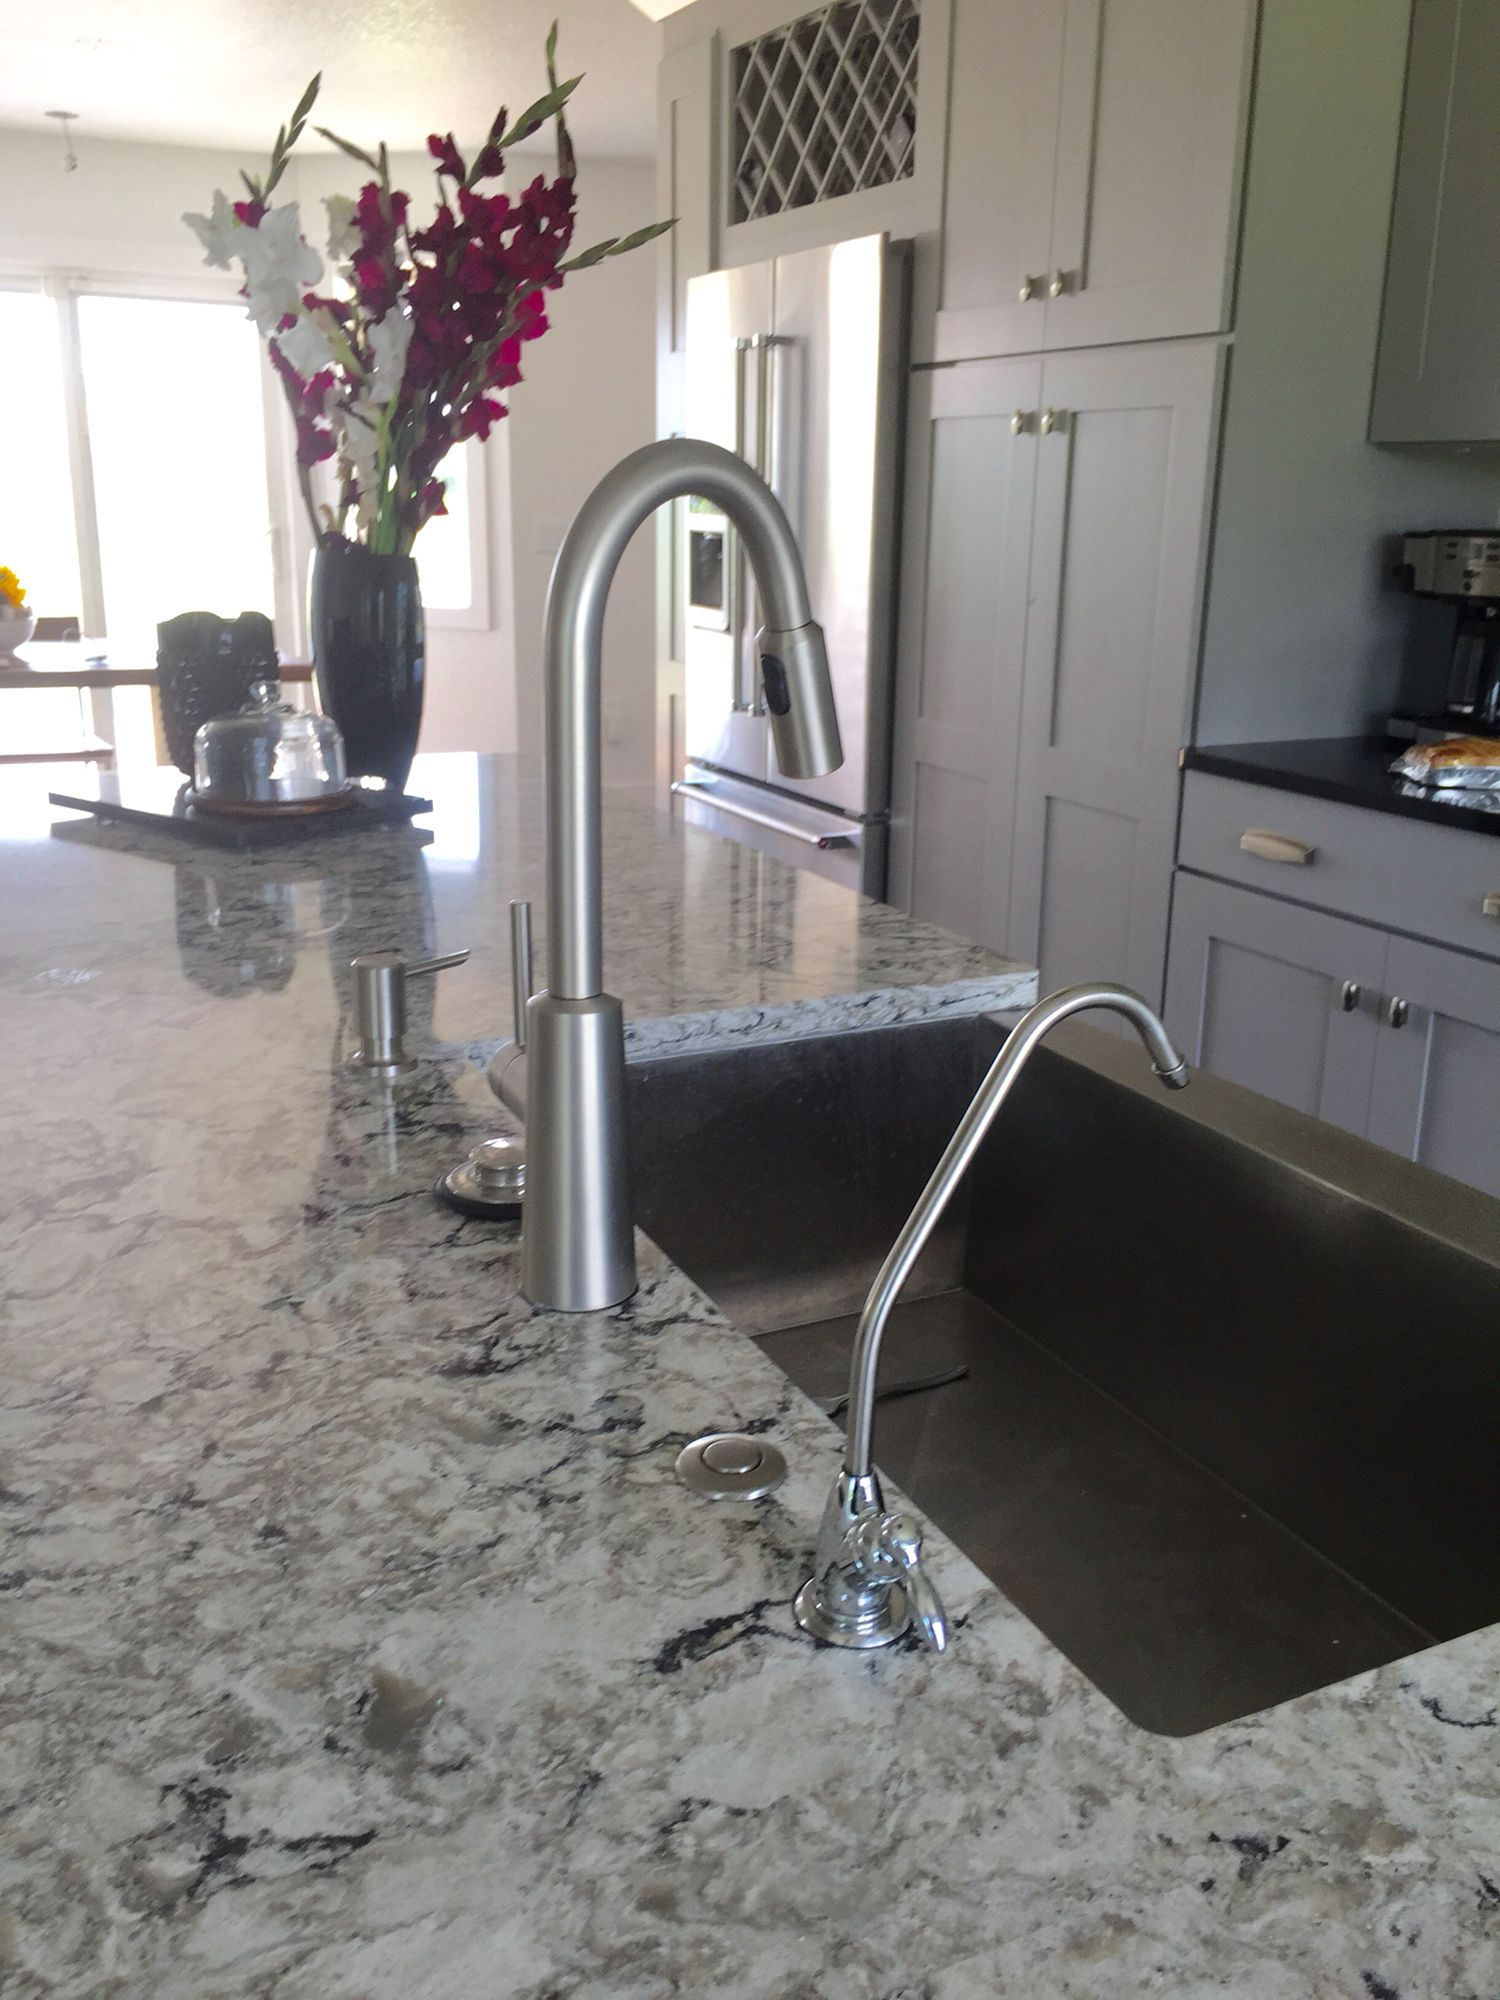 Stainless steel farm house sink Cambria counter tops and